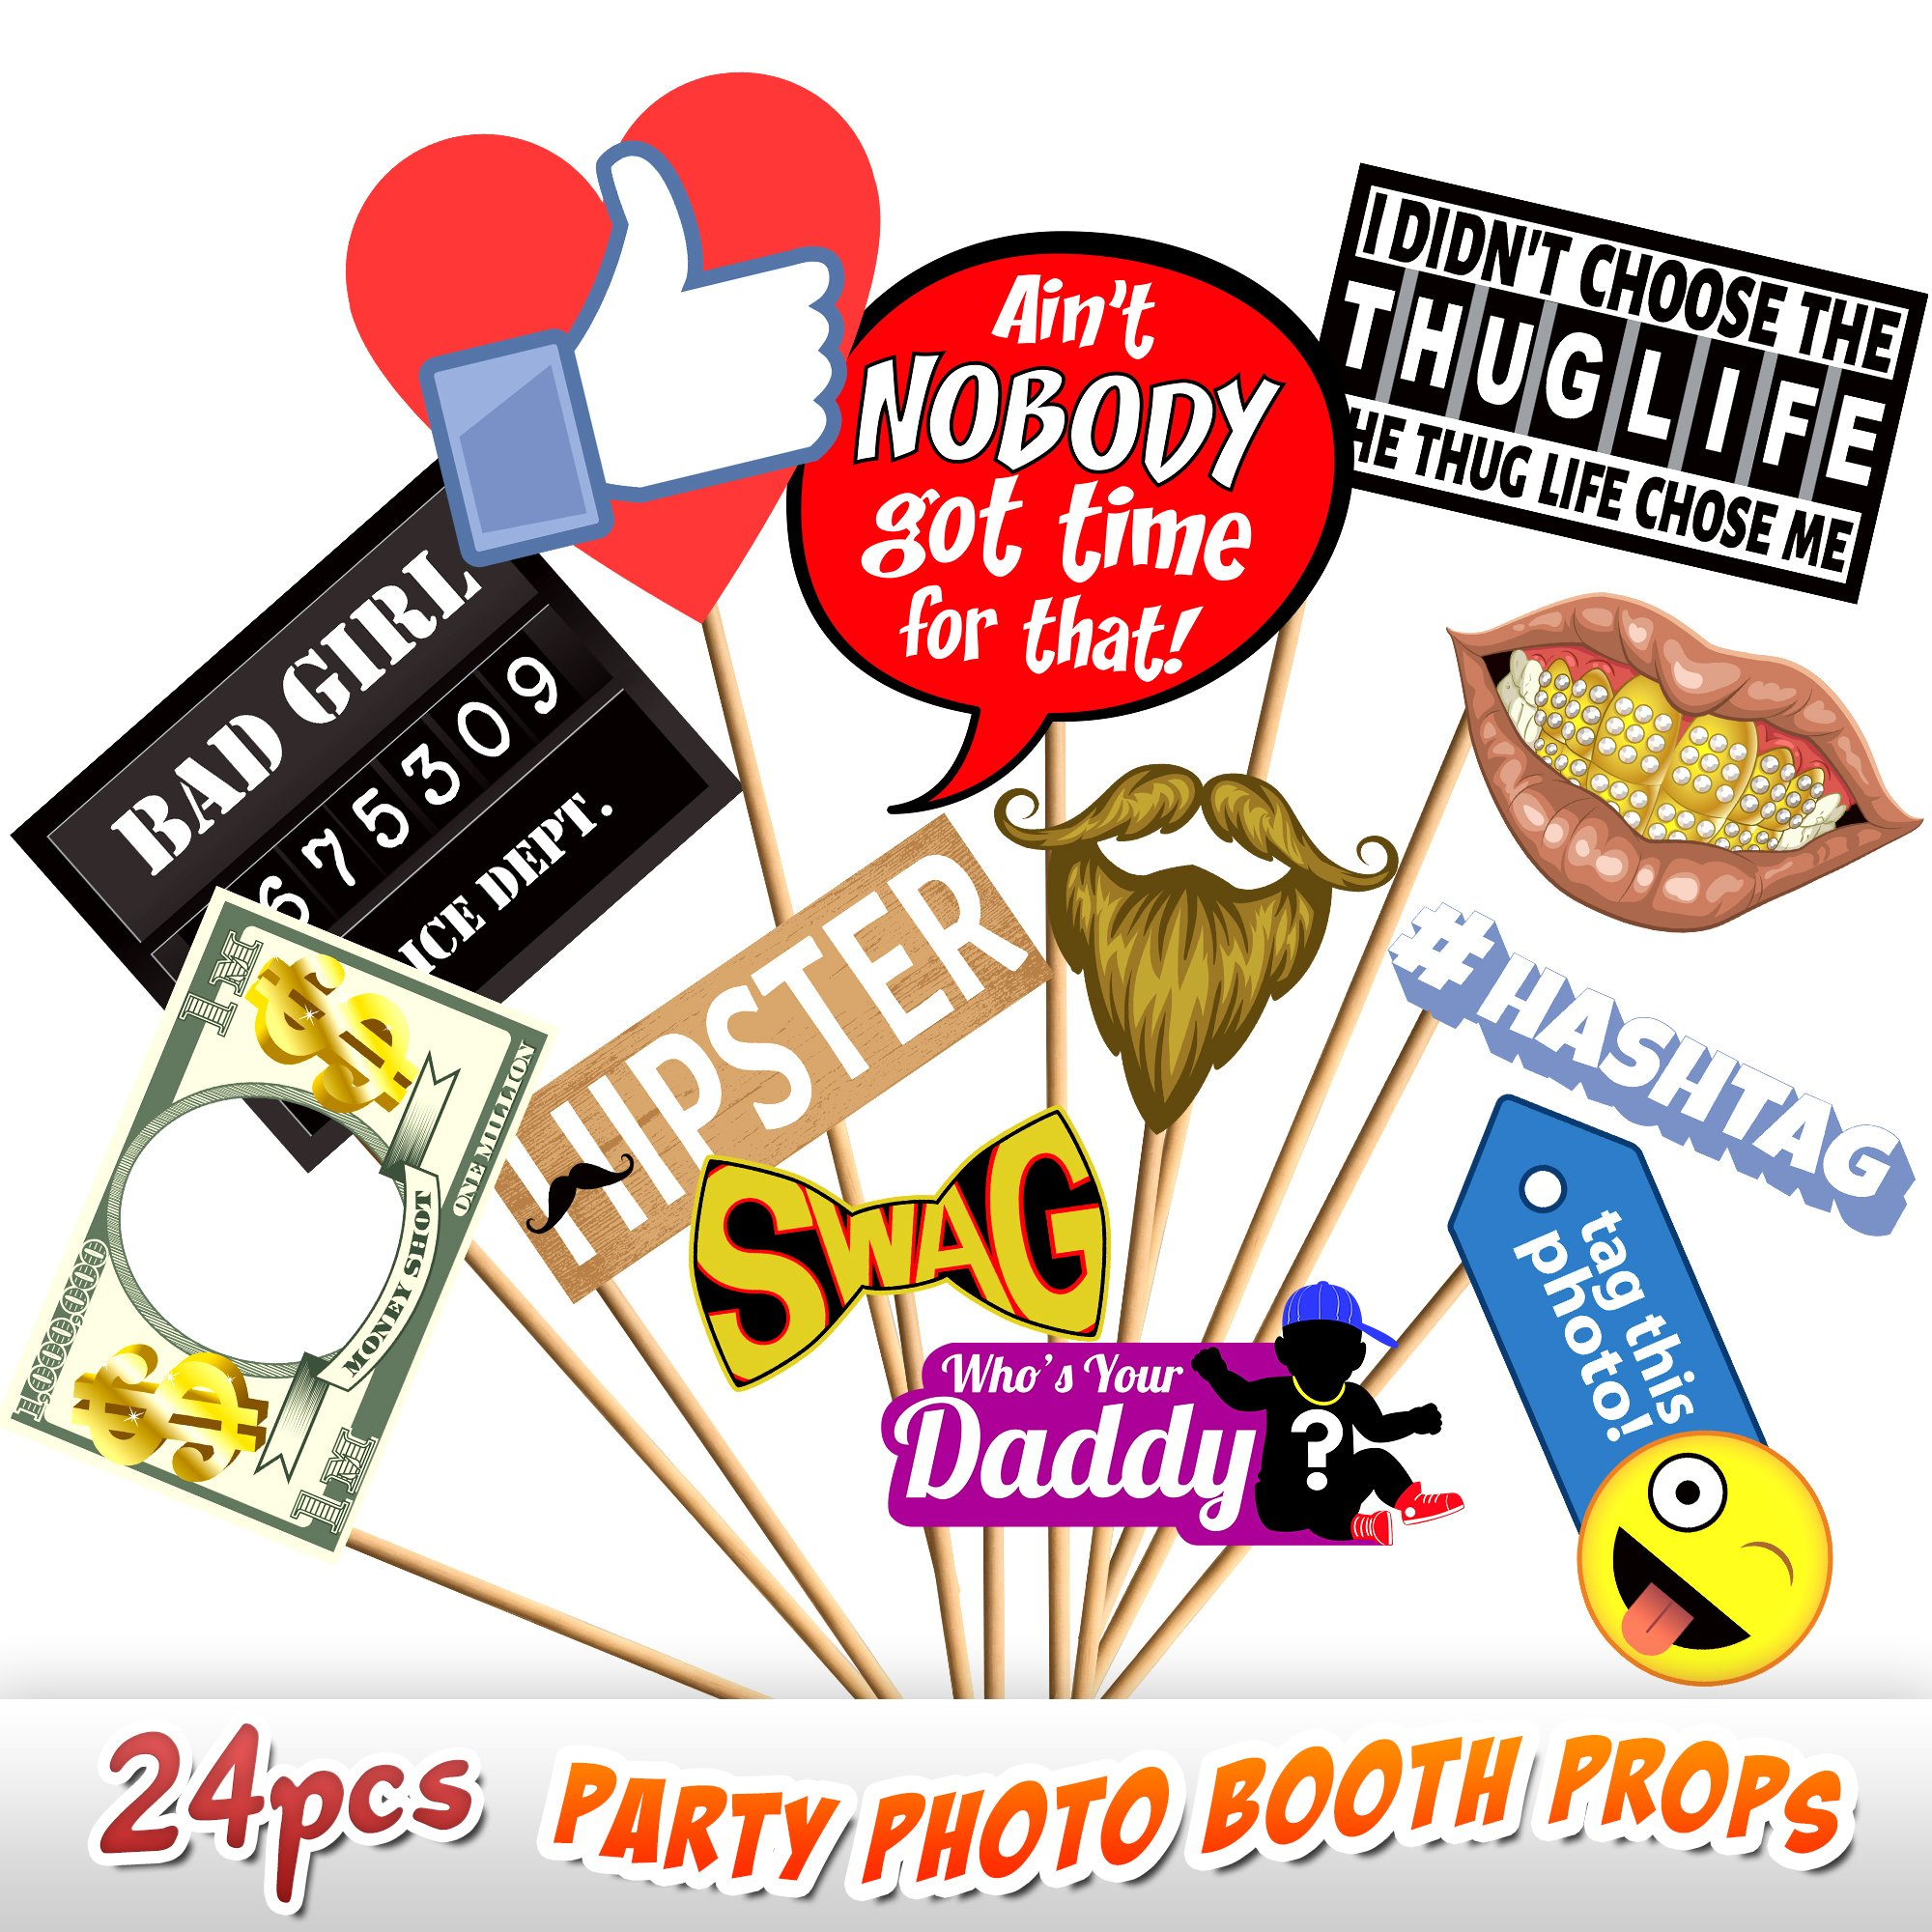 24pc Party Photo Booth Props, Novelty Dress Up Accessories, Decorations for Birthday Parties, Emoji Photo Booth Prop, Hipster Bow Tie, Social Media Like Button, Grillz Teeth, etc.